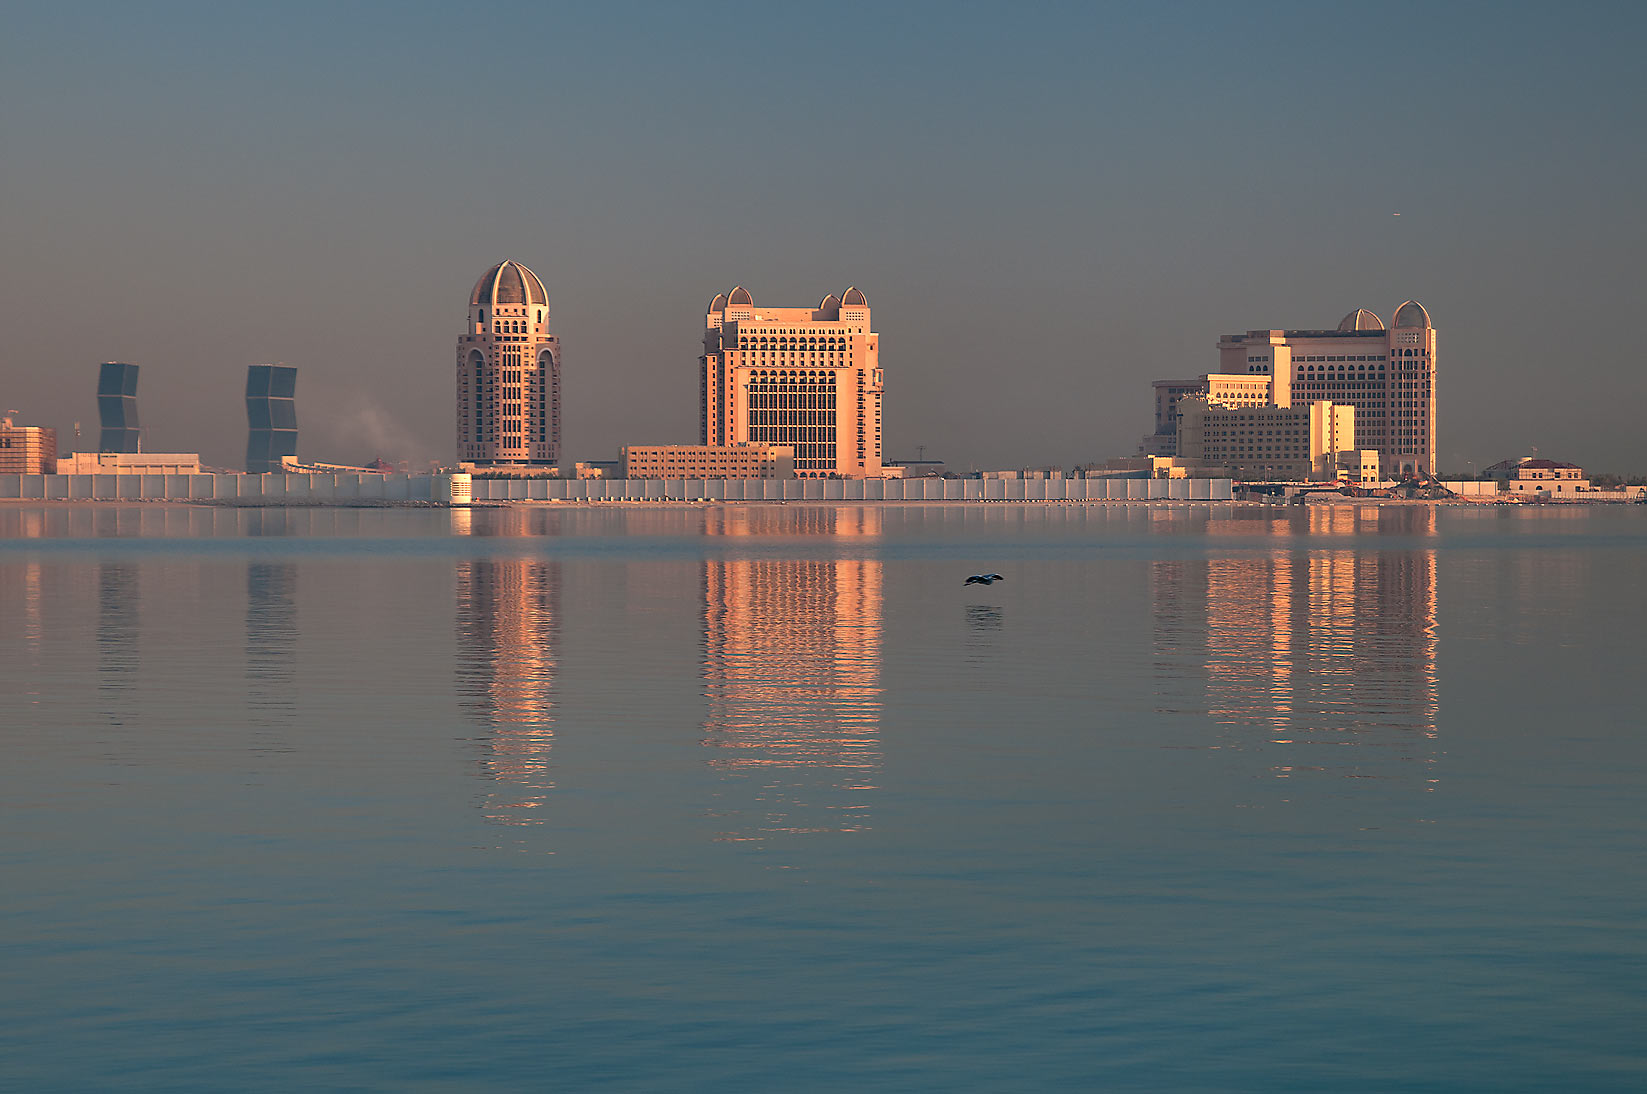 Reflections of InterContinental Hotel from a beach near Asas Twin Towers. Doha, Qatar